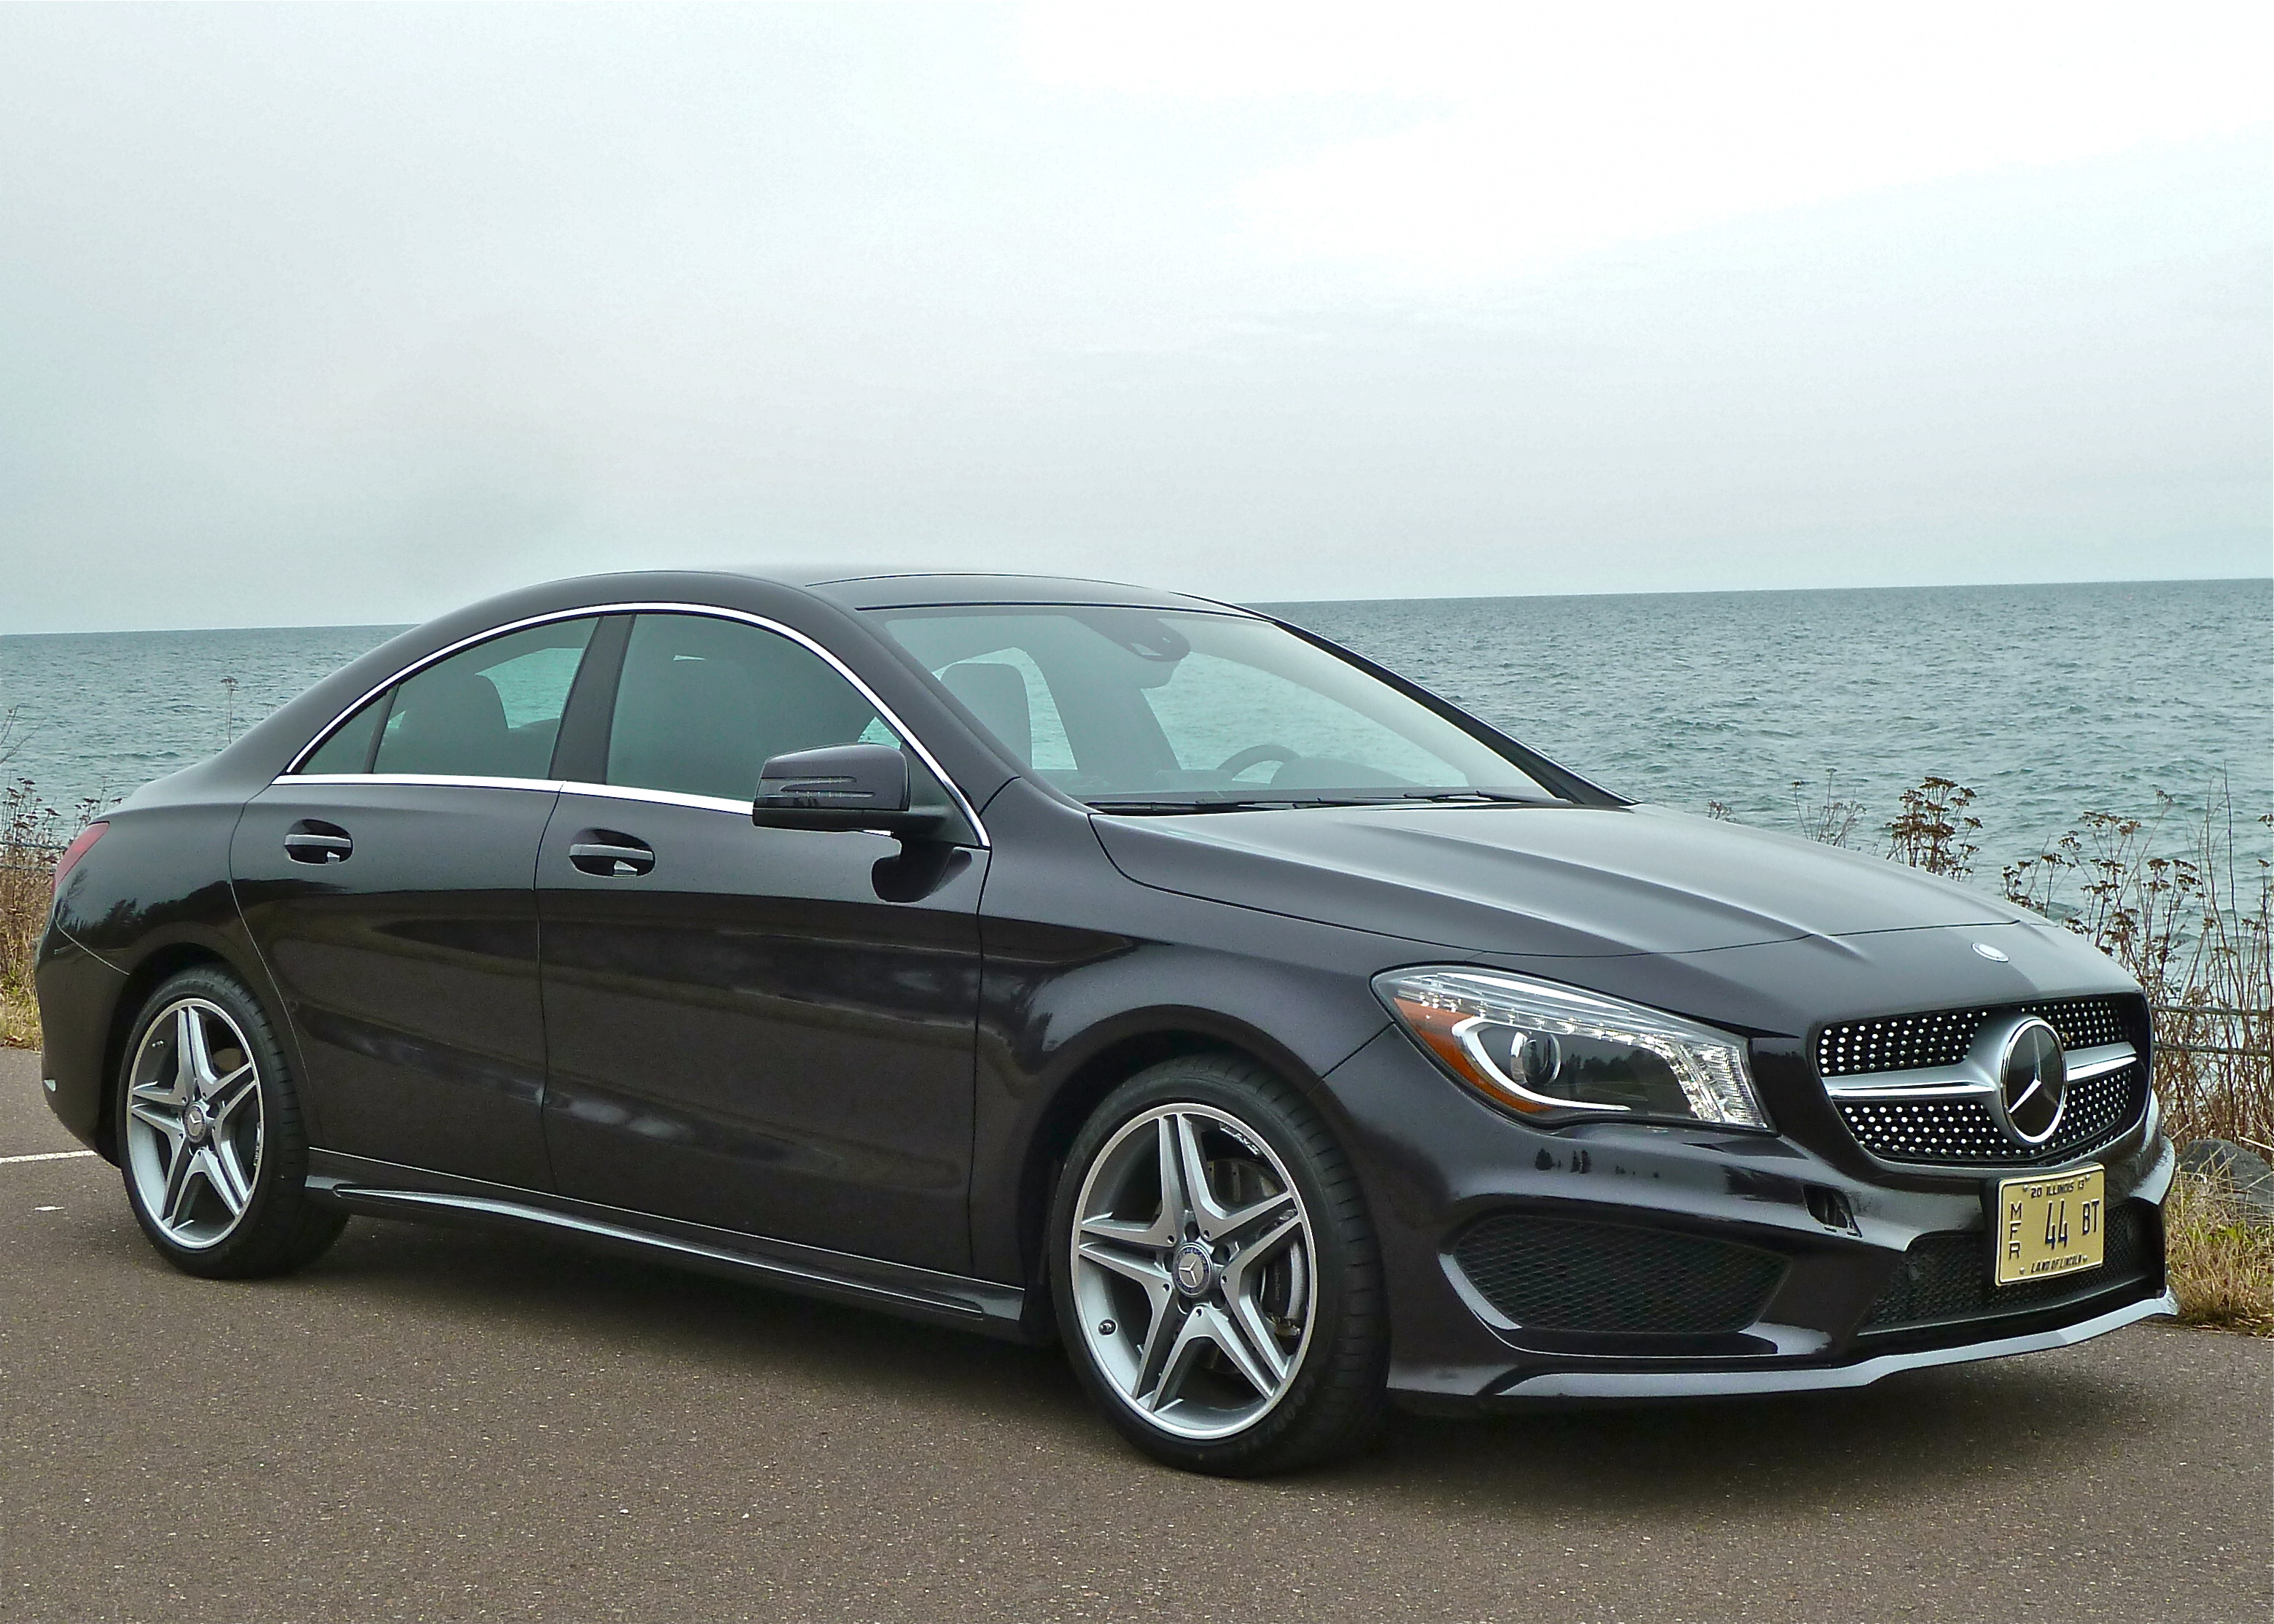 Compact and sleek, the Mercedes CLA250 is a coupe-shaped sedan at entry-level price.